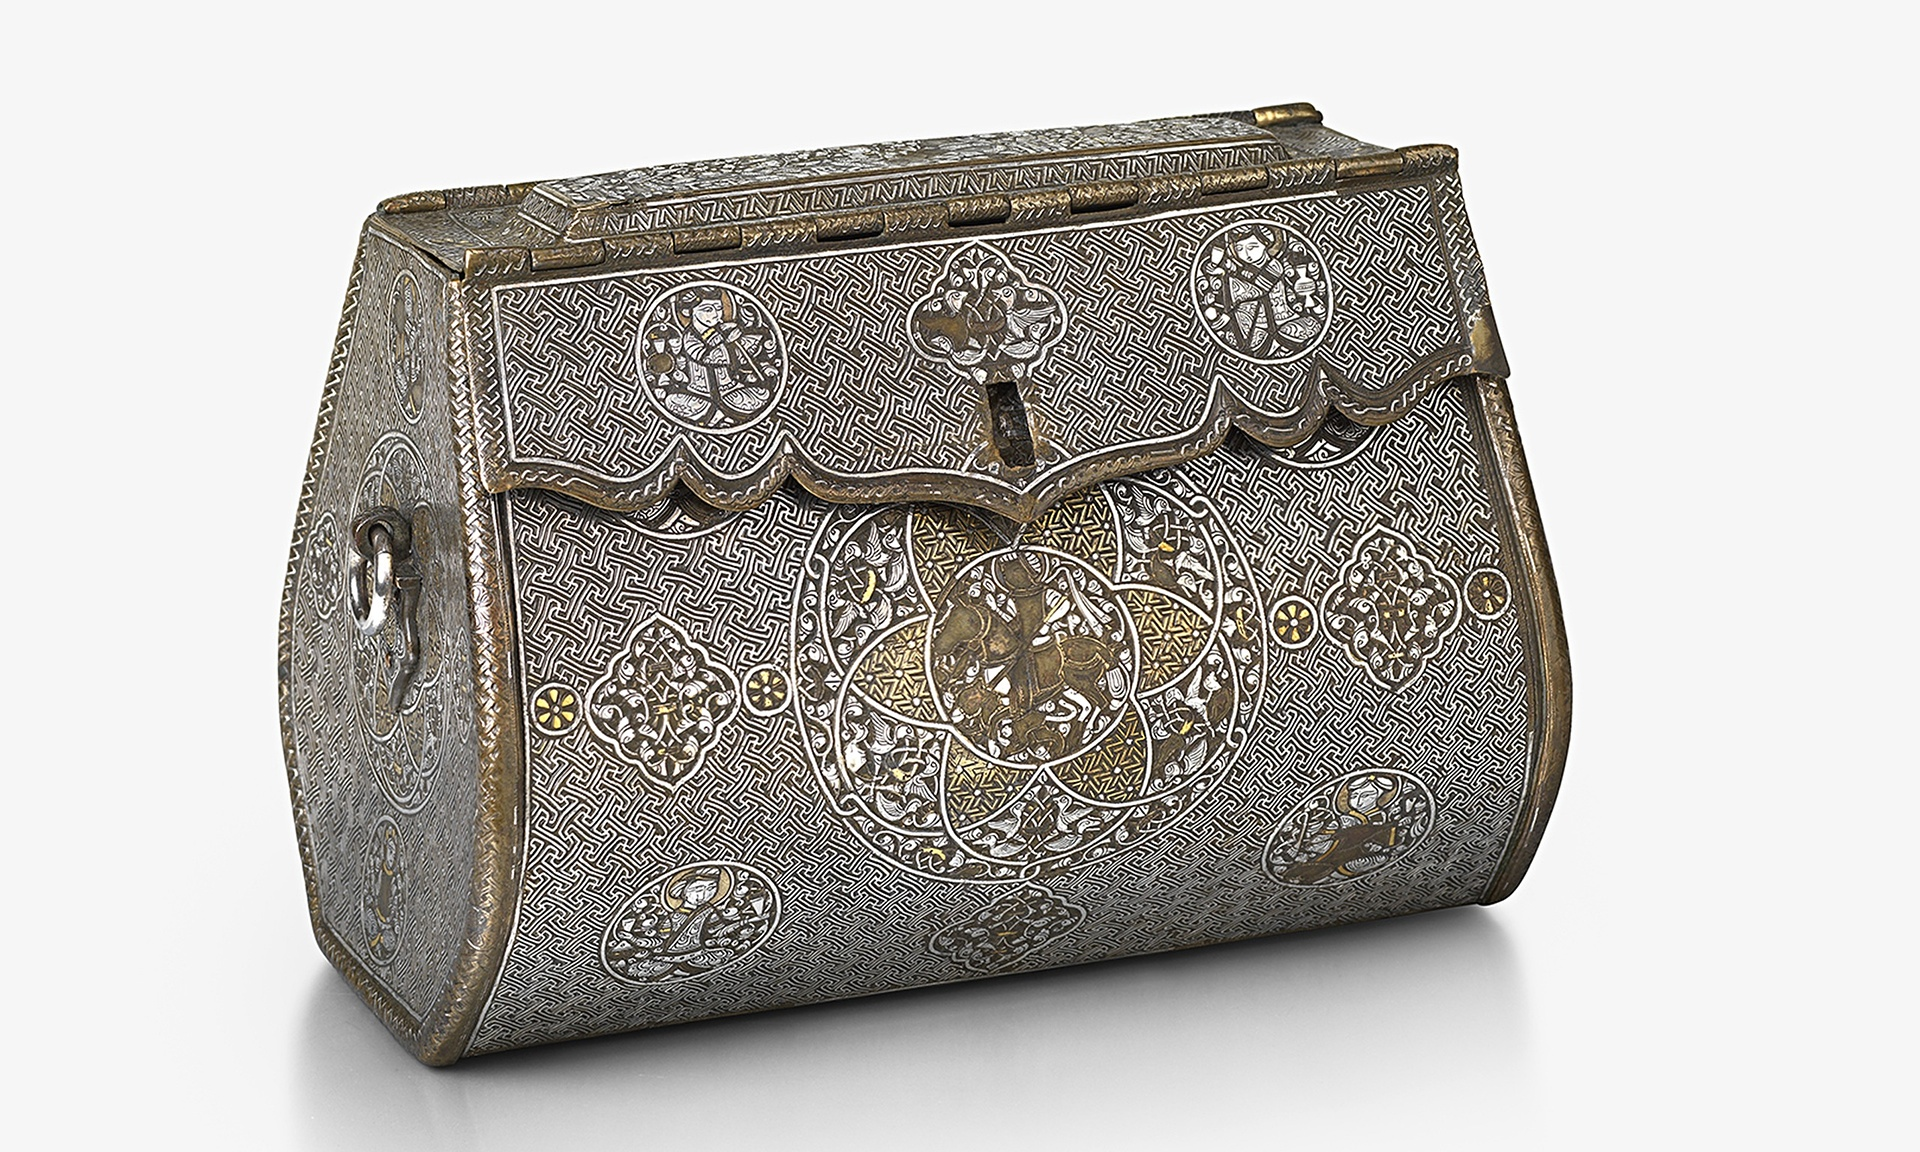 world's oldest handbag